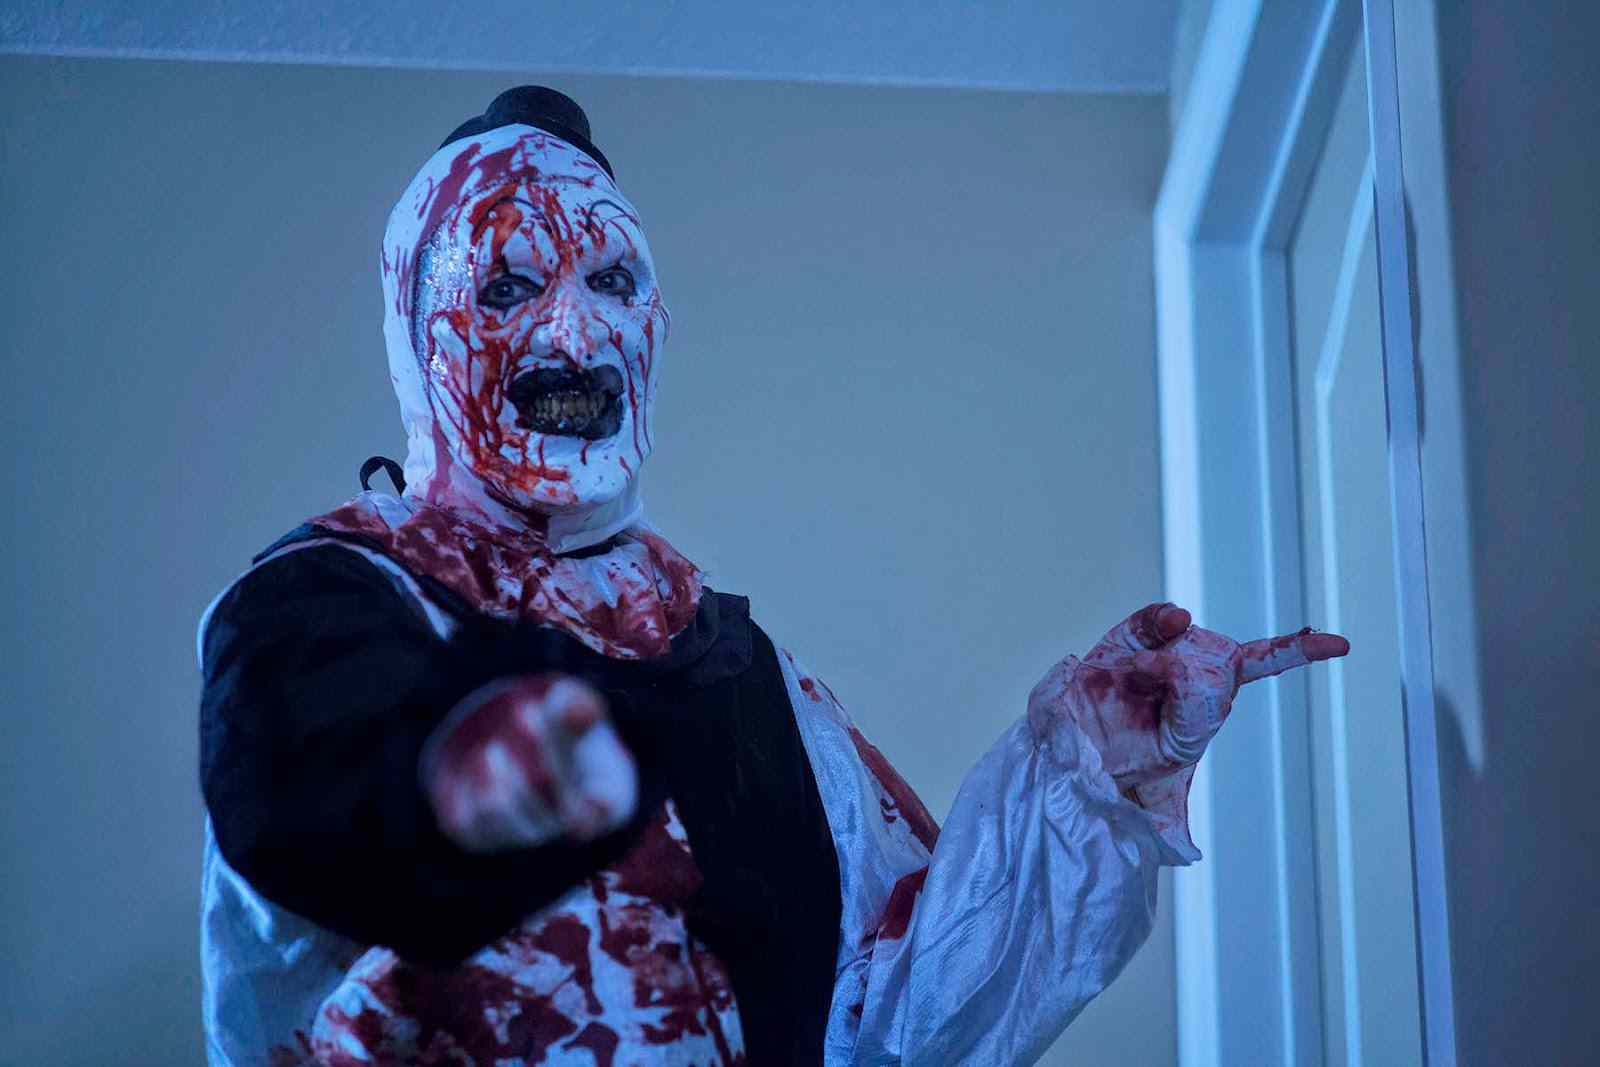 art the clown from the terrifier movie.